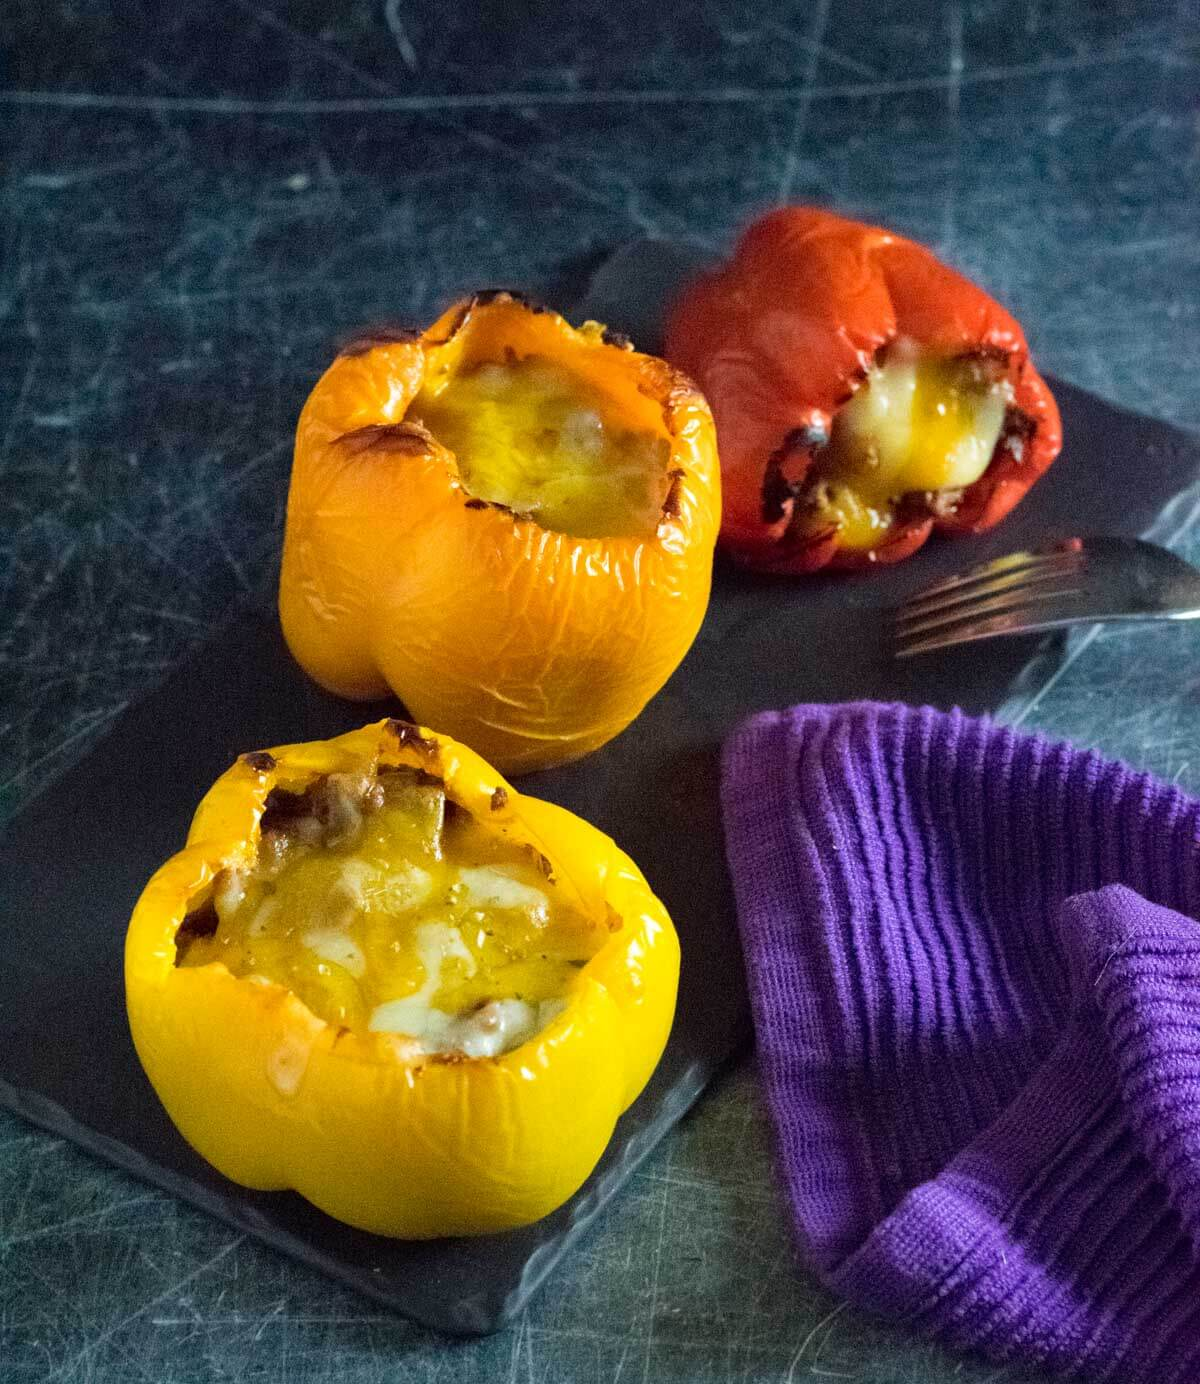 Stuffed bell peppers with beef on black tray.